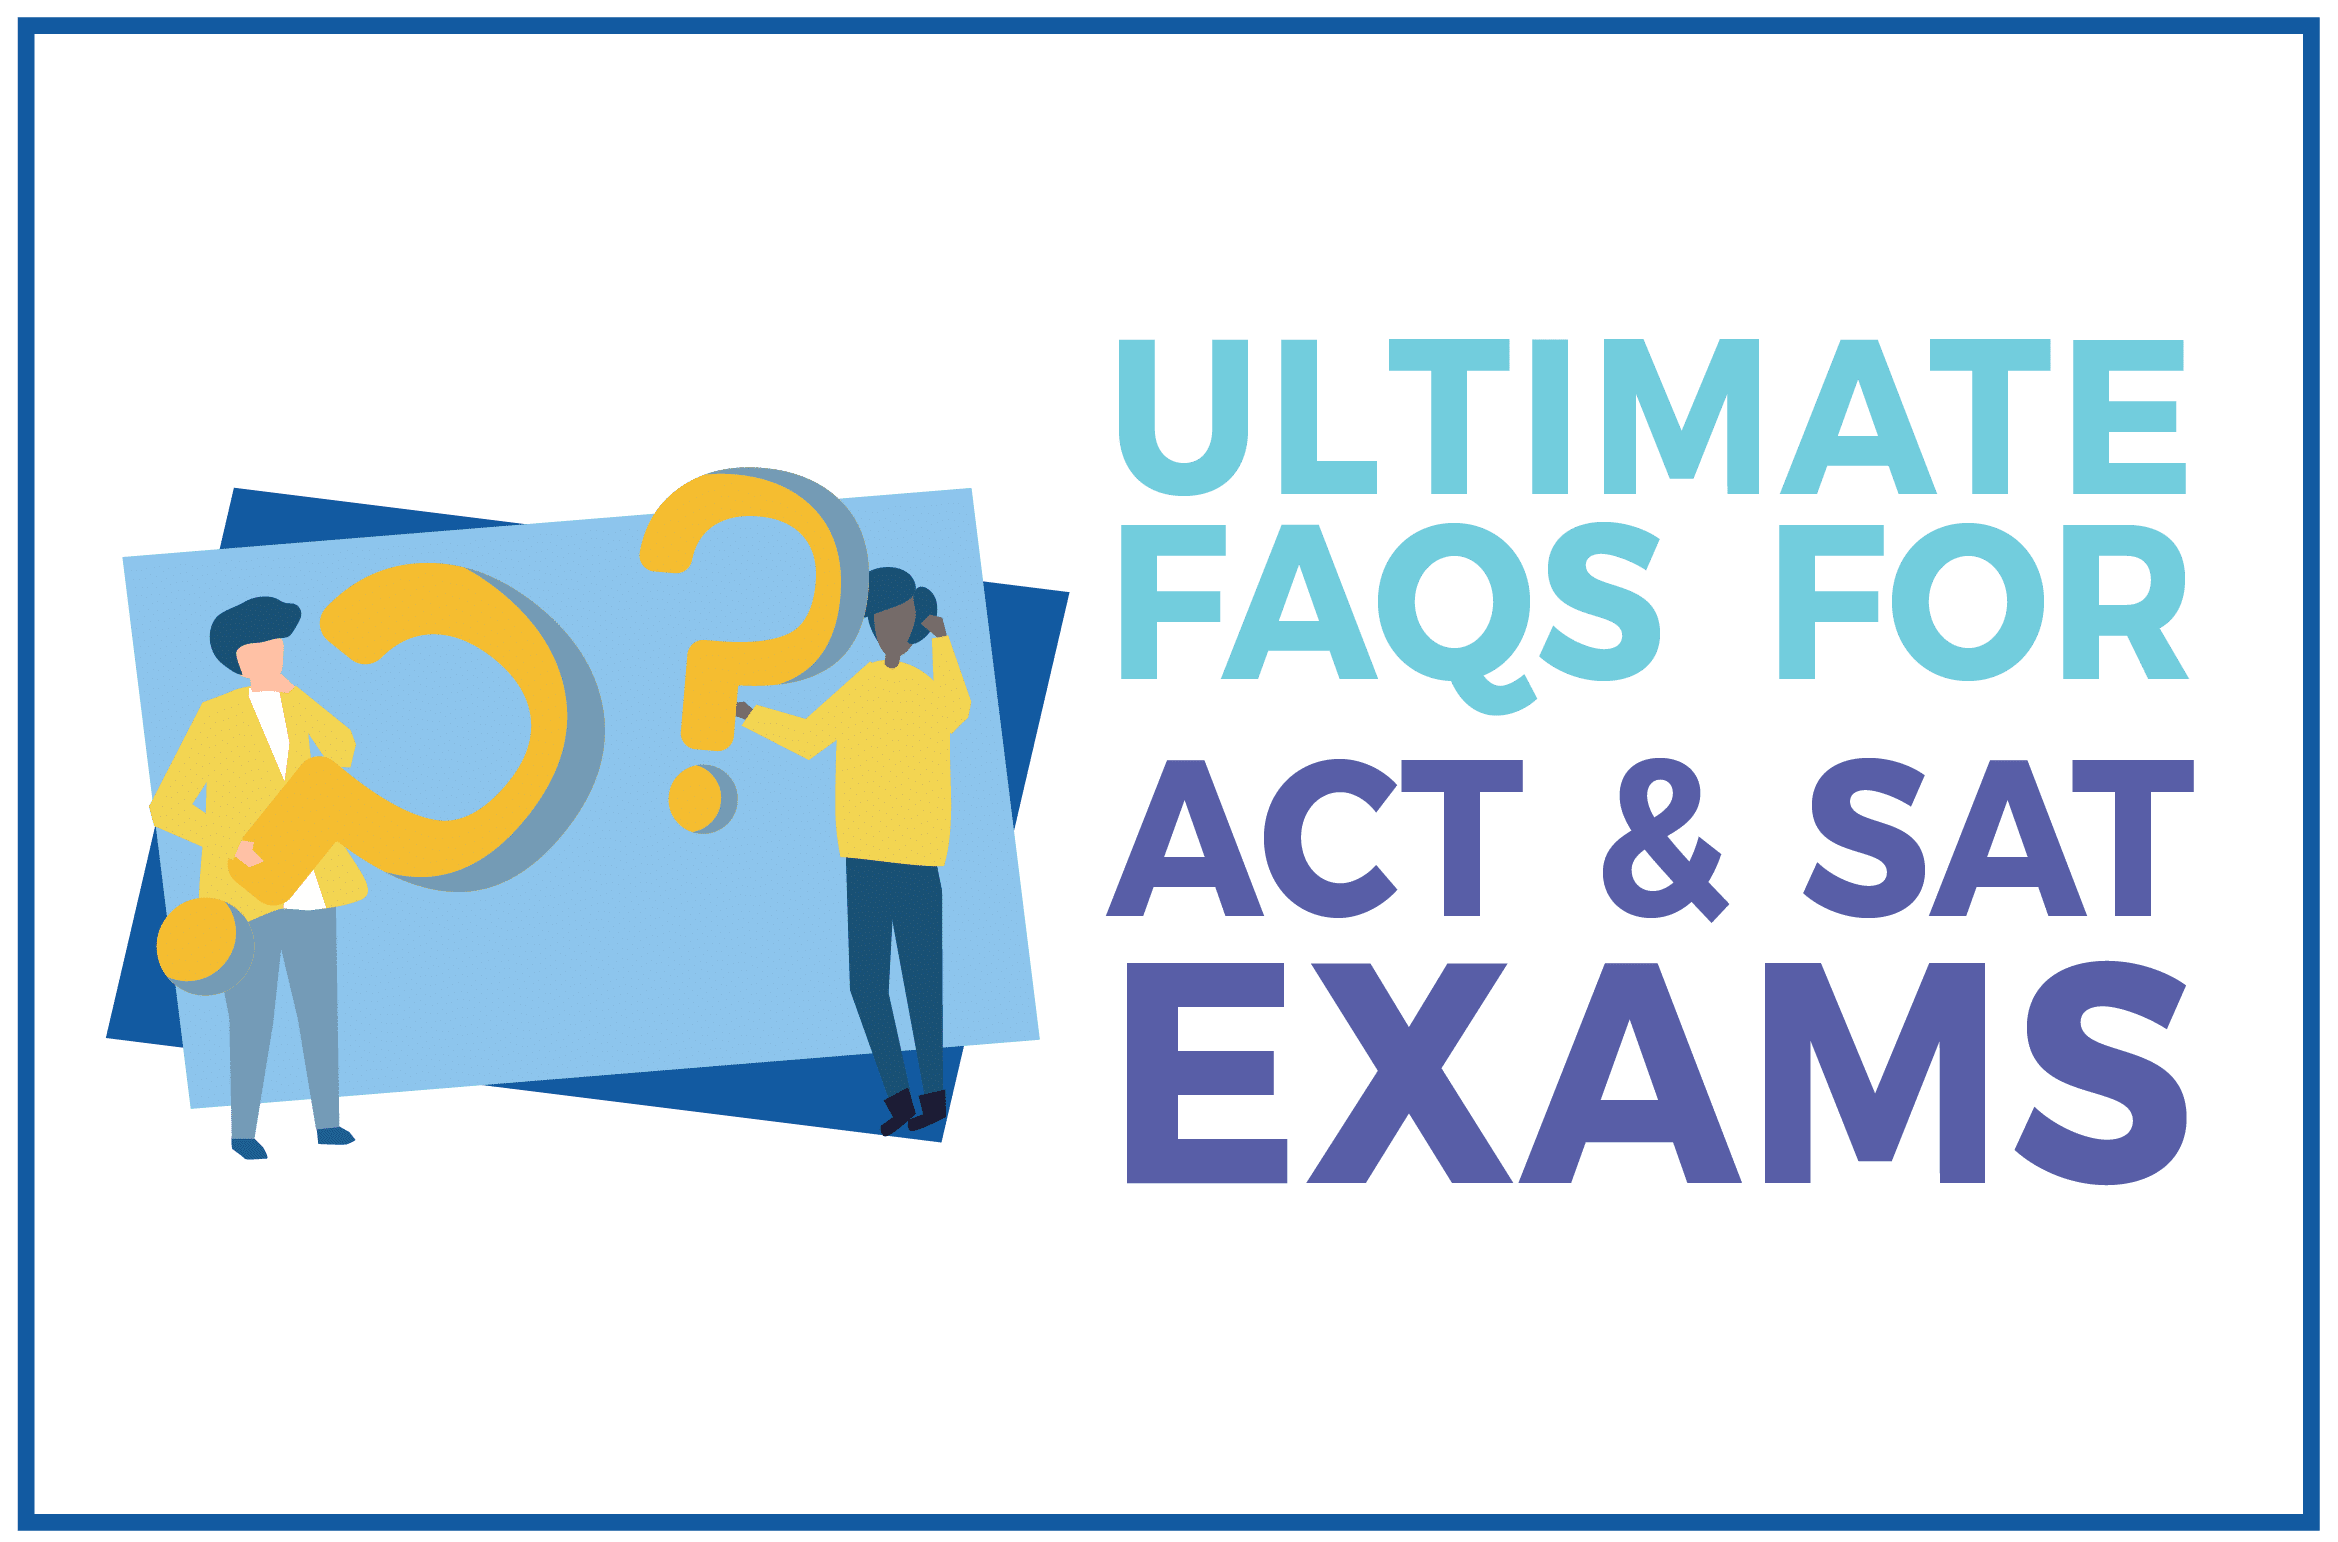 Ultimate FAQs for ACT & SAT Exams